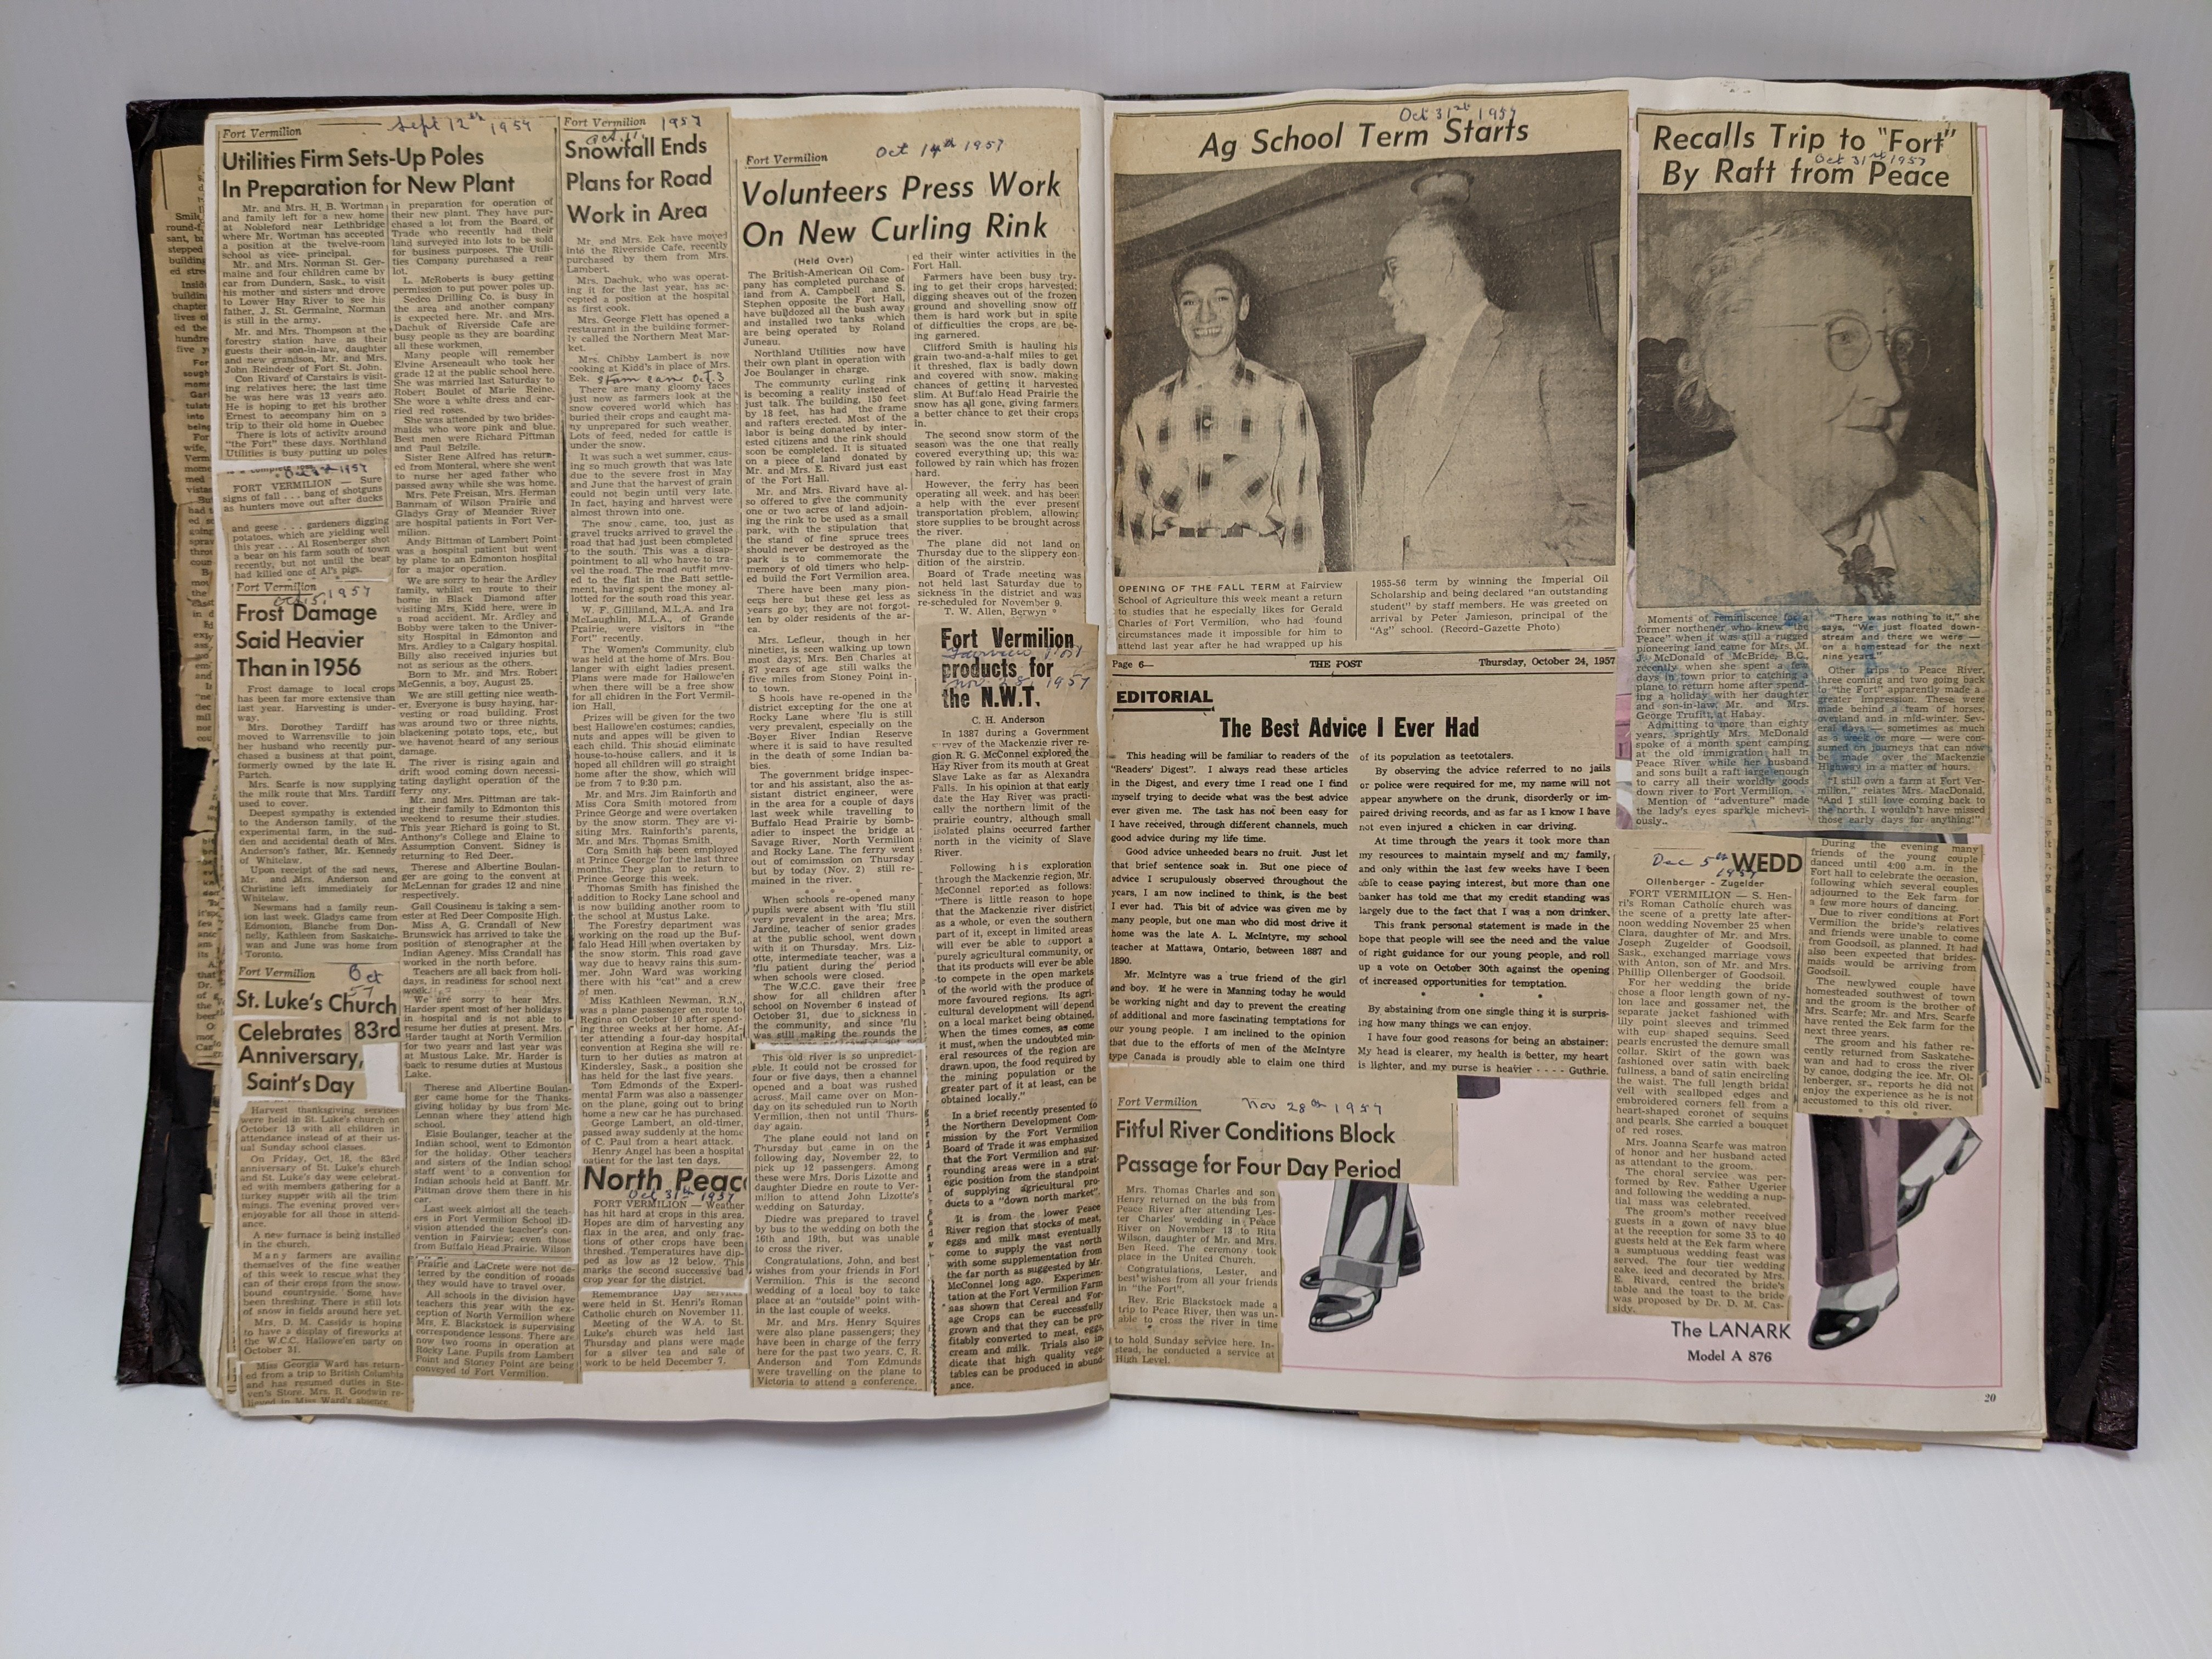 """Dorothea Newman pieced together clippings regarding Fort Vermilion from the Peace River Record Gazette to create this wonderful scrap book. The book contains news from 1952- 1957 documenting everything from major events (Rabies Epidemic in Upper Peace Country 1950's) to personal news (""""Henry Angel has been a hospital patient for the past 10 days""""). The news clippings are pasted on the pages of a fashion book which is noted via shoes stepping out of the bottom right corner. Some pages have so many clippings they are layered overtop each other -requiring the reader to flip them up to read all the stories. If you are one for anecdotal history - or have strong ties to Fort Vermilion - this sure is an entertaining read!  17/05/2021 2021.18.02 / Newman Dorothea"""